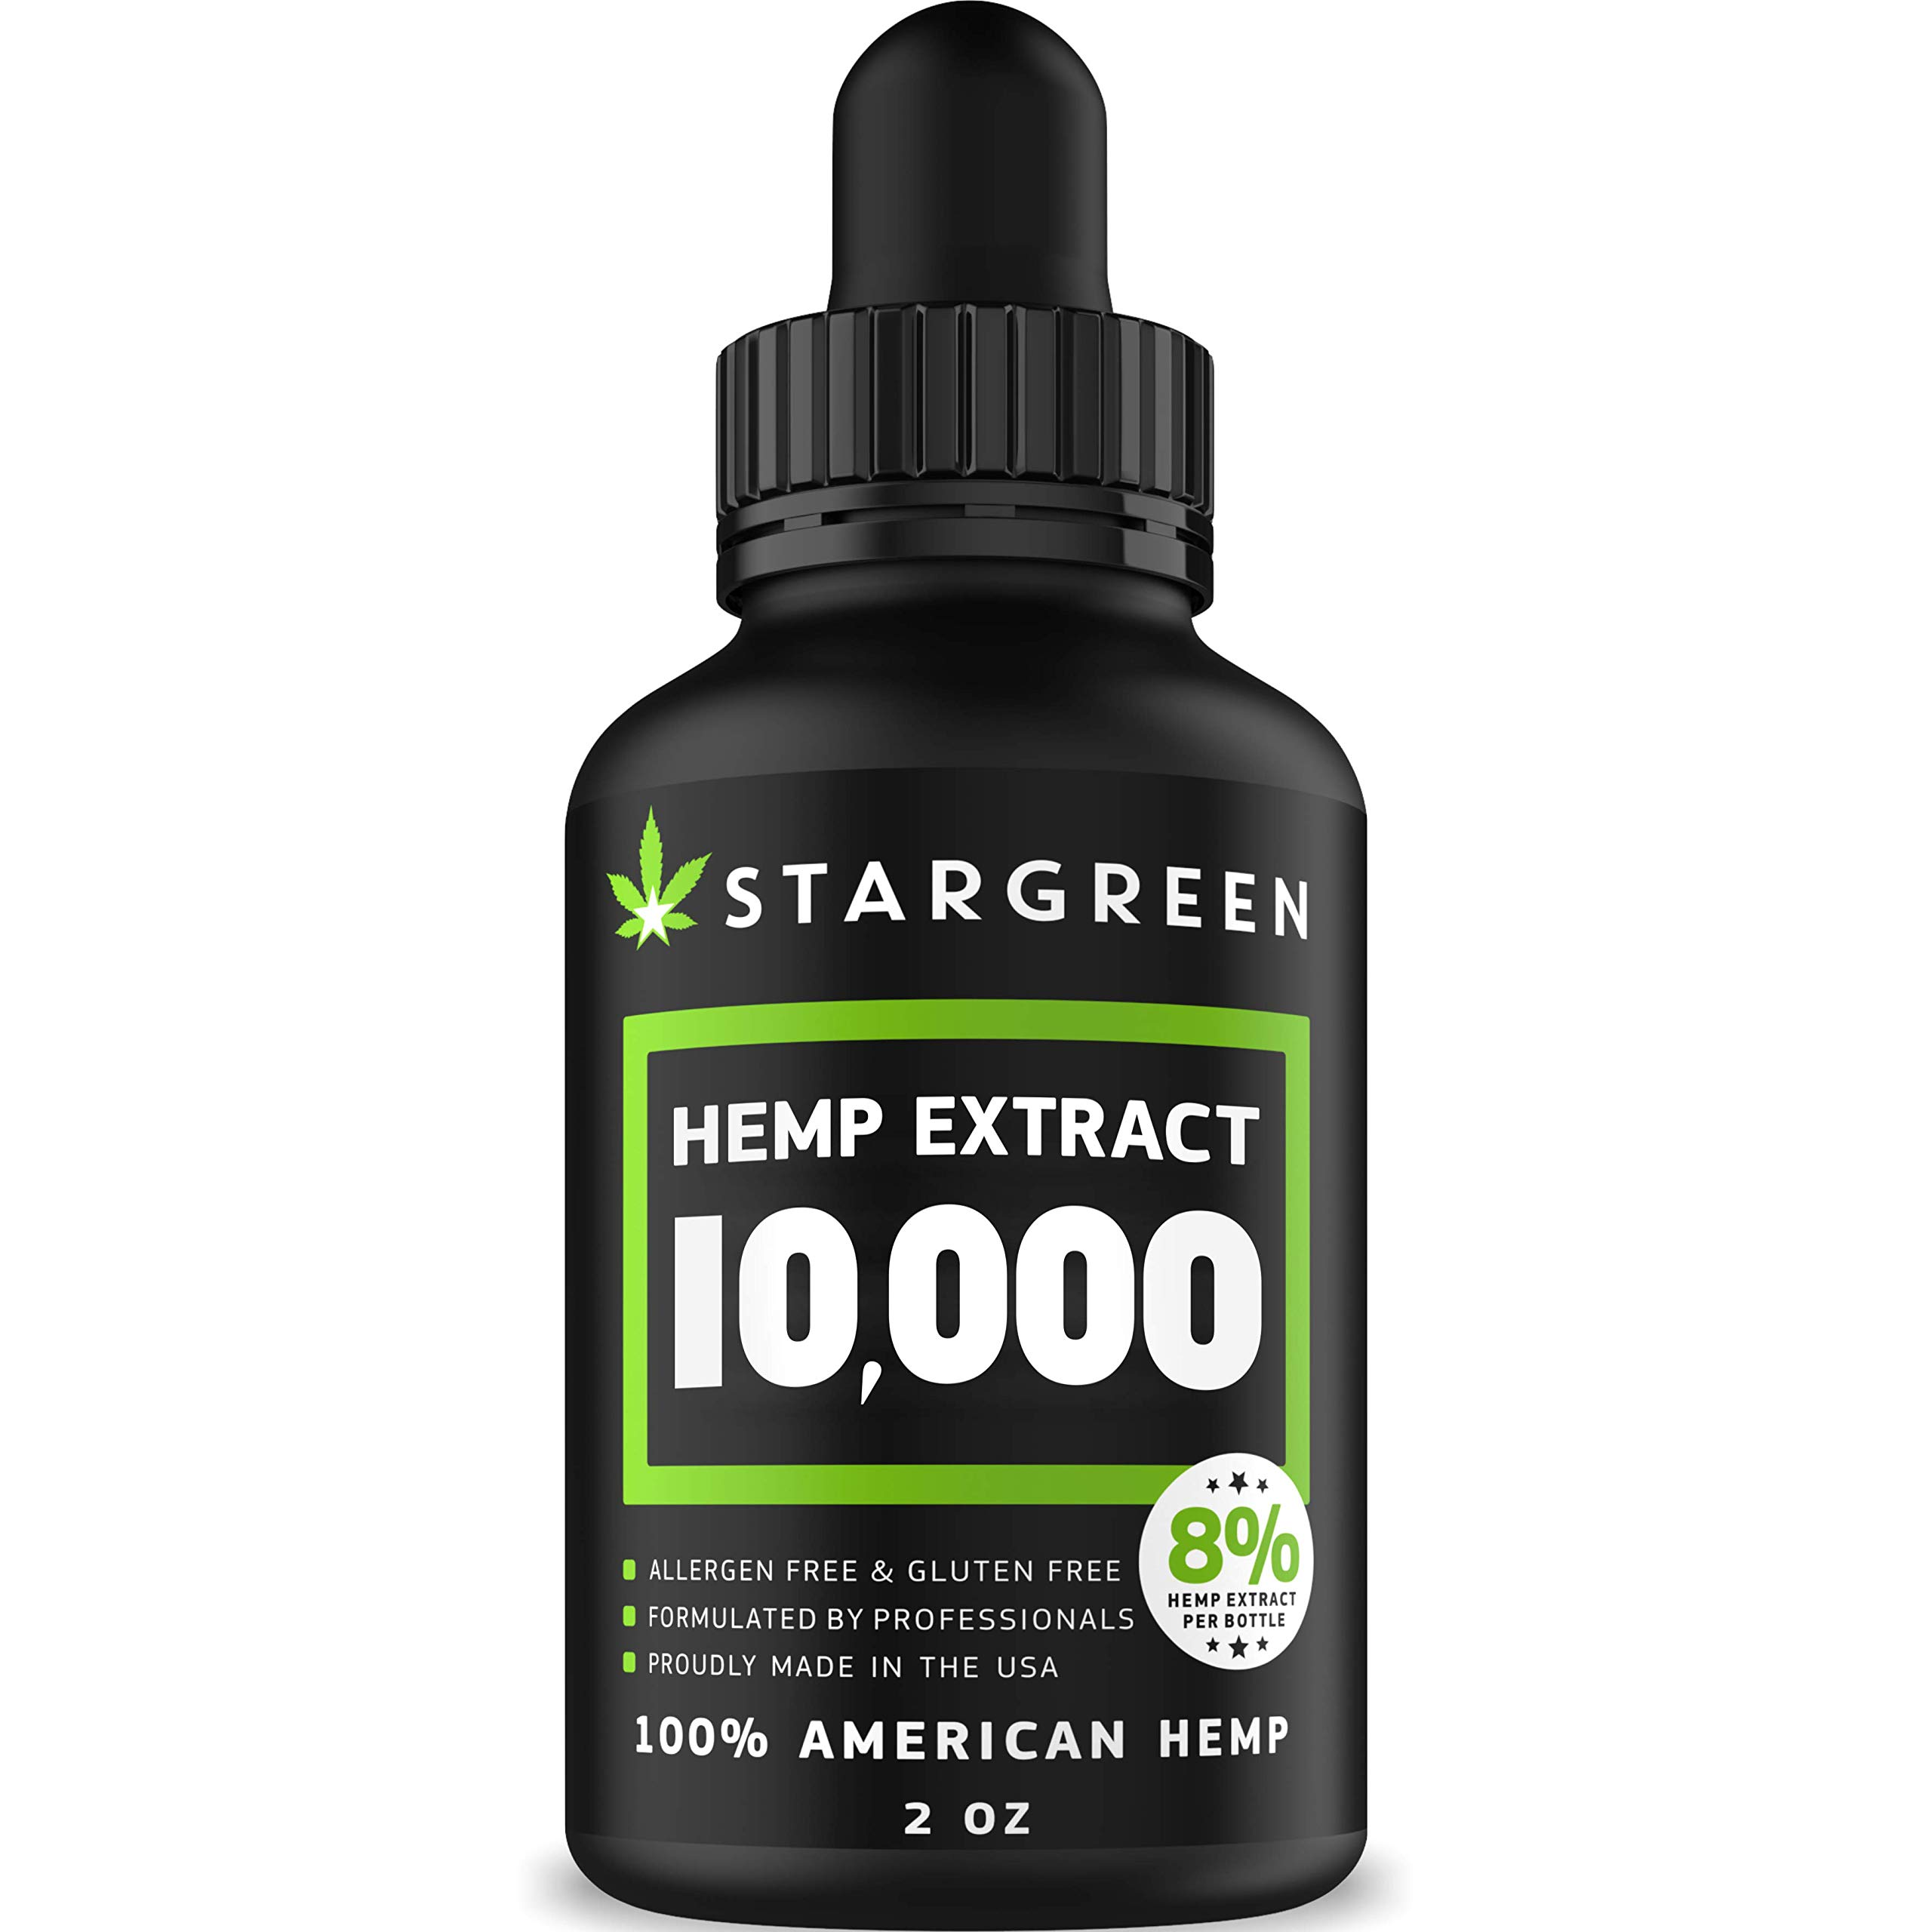 Hemp Oil for Pain Relief - 10000 MG - Vitamin D, E & Omega 3, 6, 9 - All Natural Pain, Anxiety & Stress Relief - Made in USA - Anti-Inflammatory, Hip & Joint Support - Provides Natural Calm Sleep by Stargreen